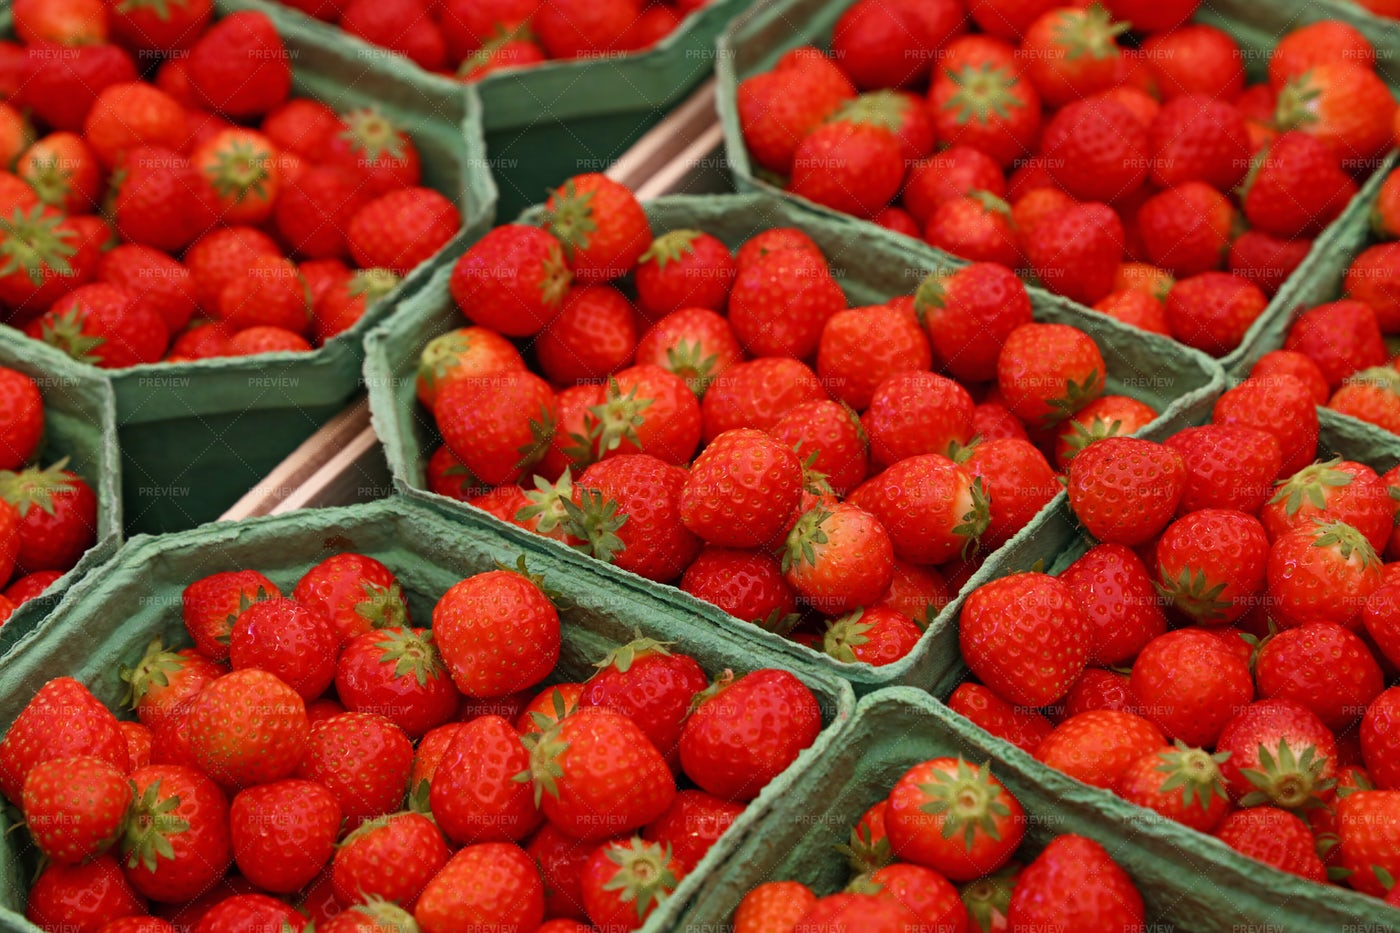 Strawberries For Sale: Stock Photos